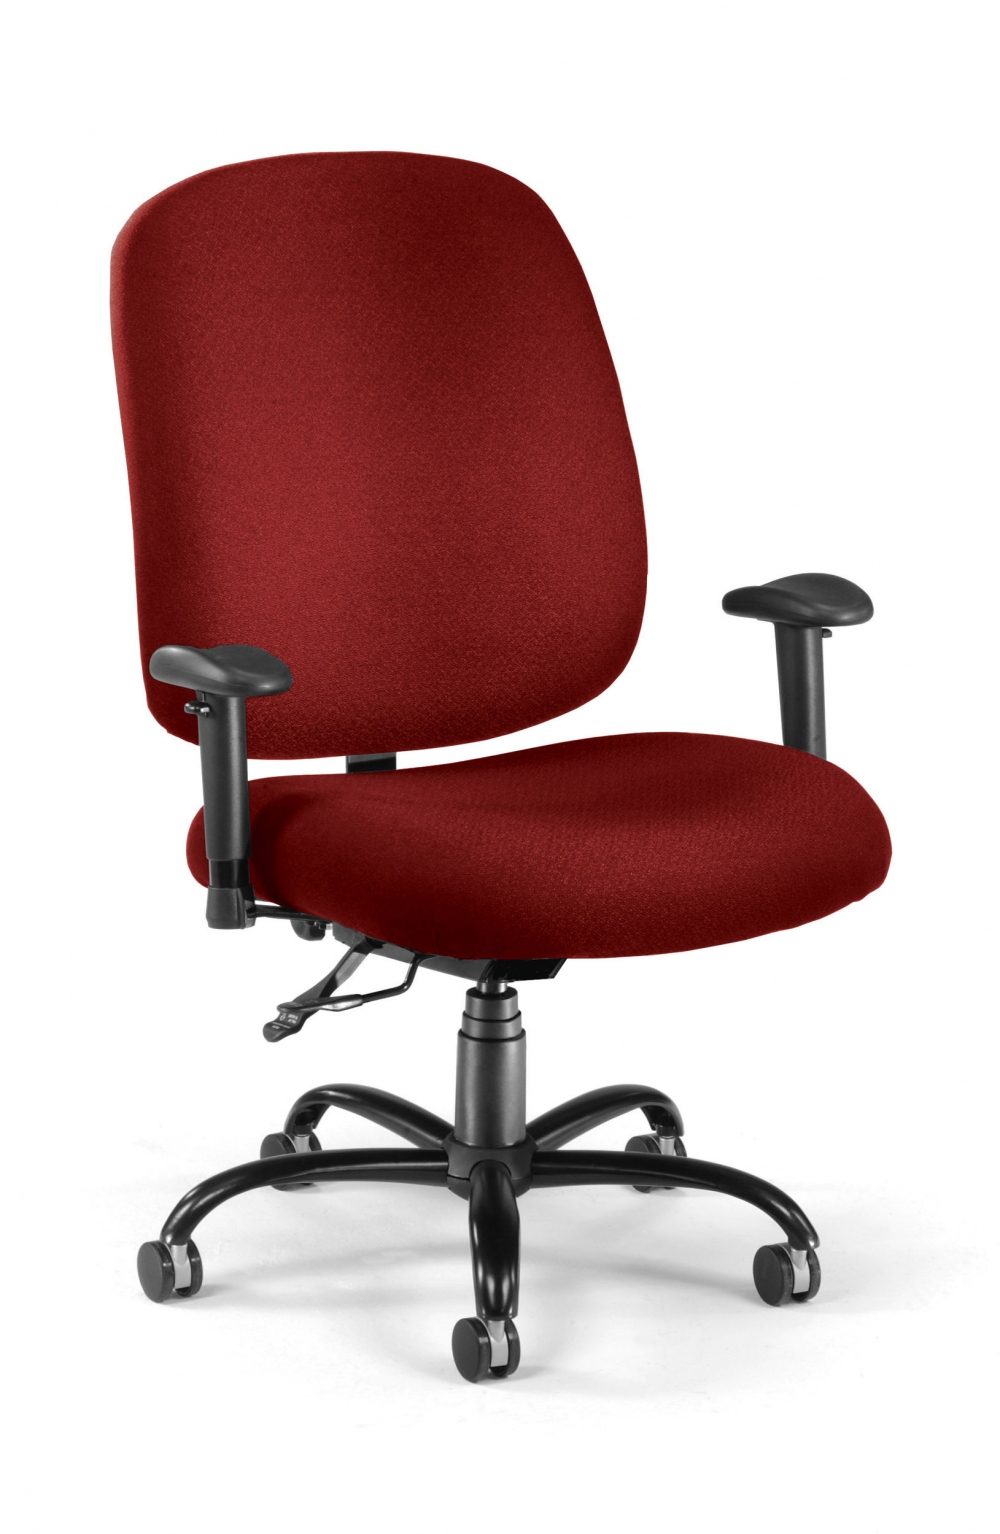 big-and-tall-office-chairs-heavy-duty-desk-chair.jpg